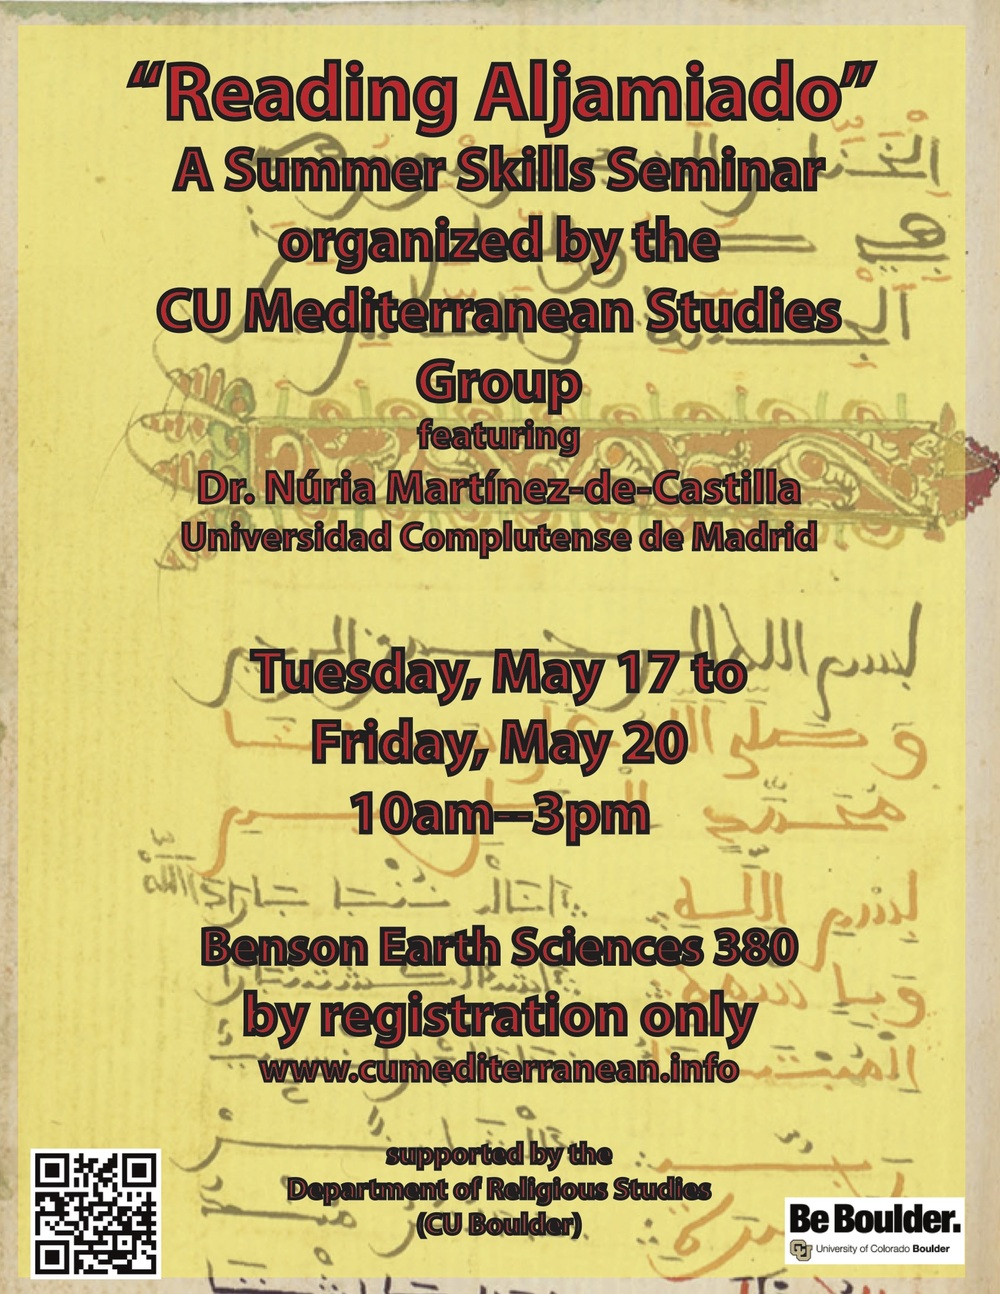 cu mediterranean studies group the mediterranean seminar seminar featuring dr nuria martiacutenez de castilla universidad complutense de madrid cu boulder see the announcement applications are closed